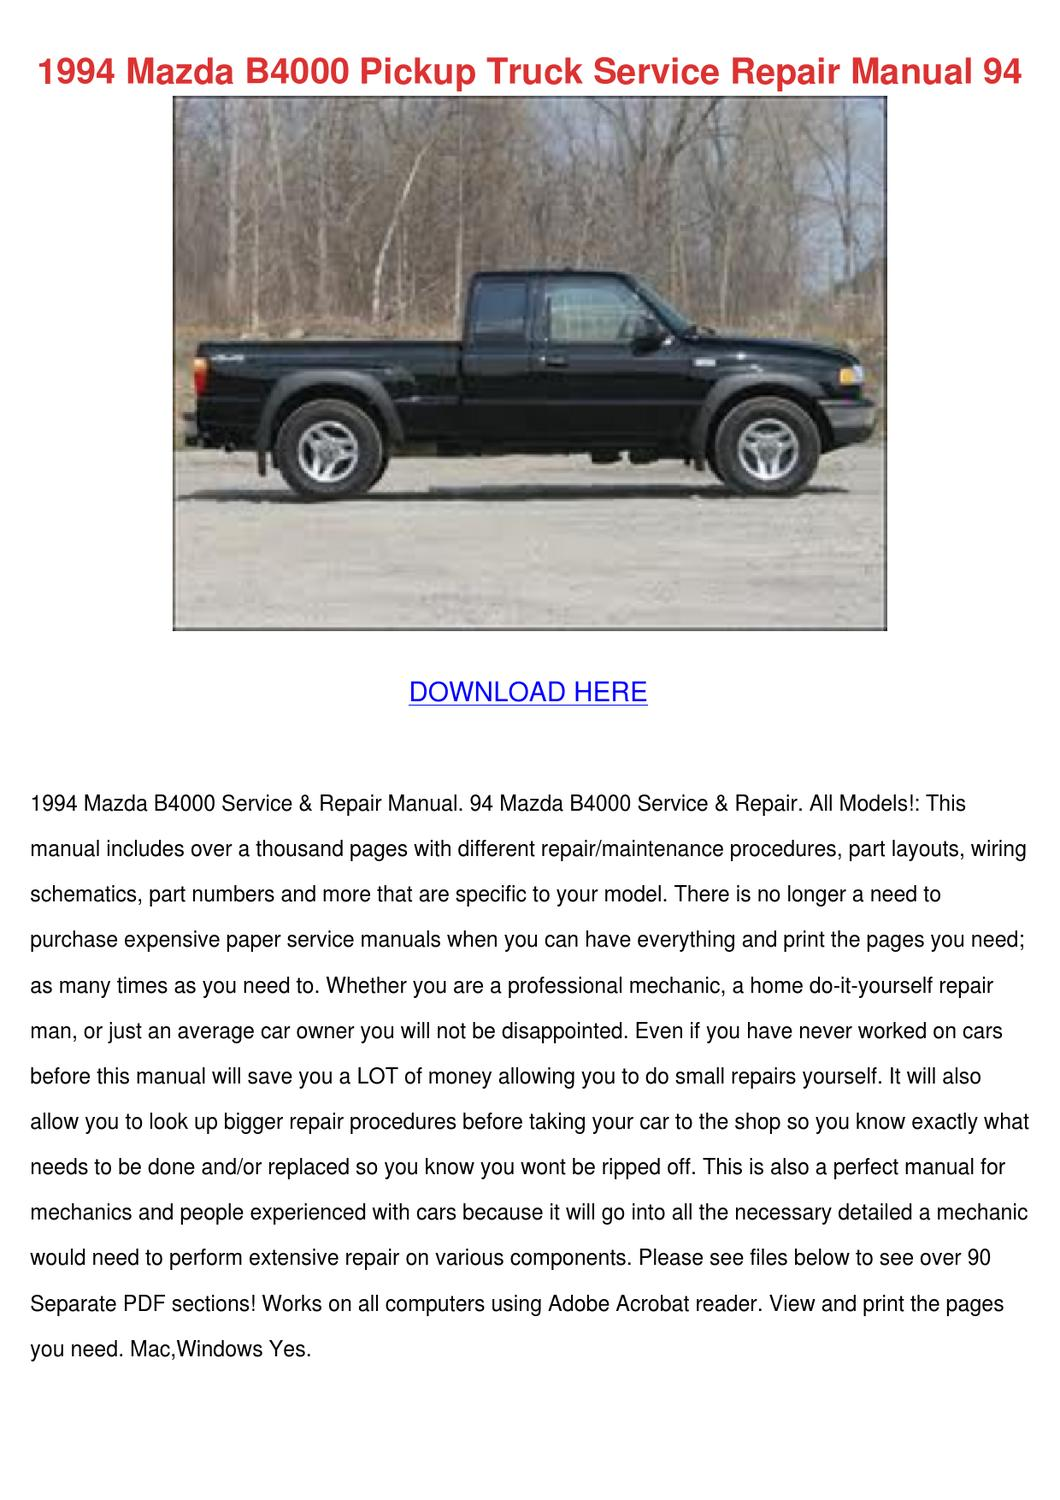 1994 Mazda B4000 Pickup Truck Service Repair By Whitley